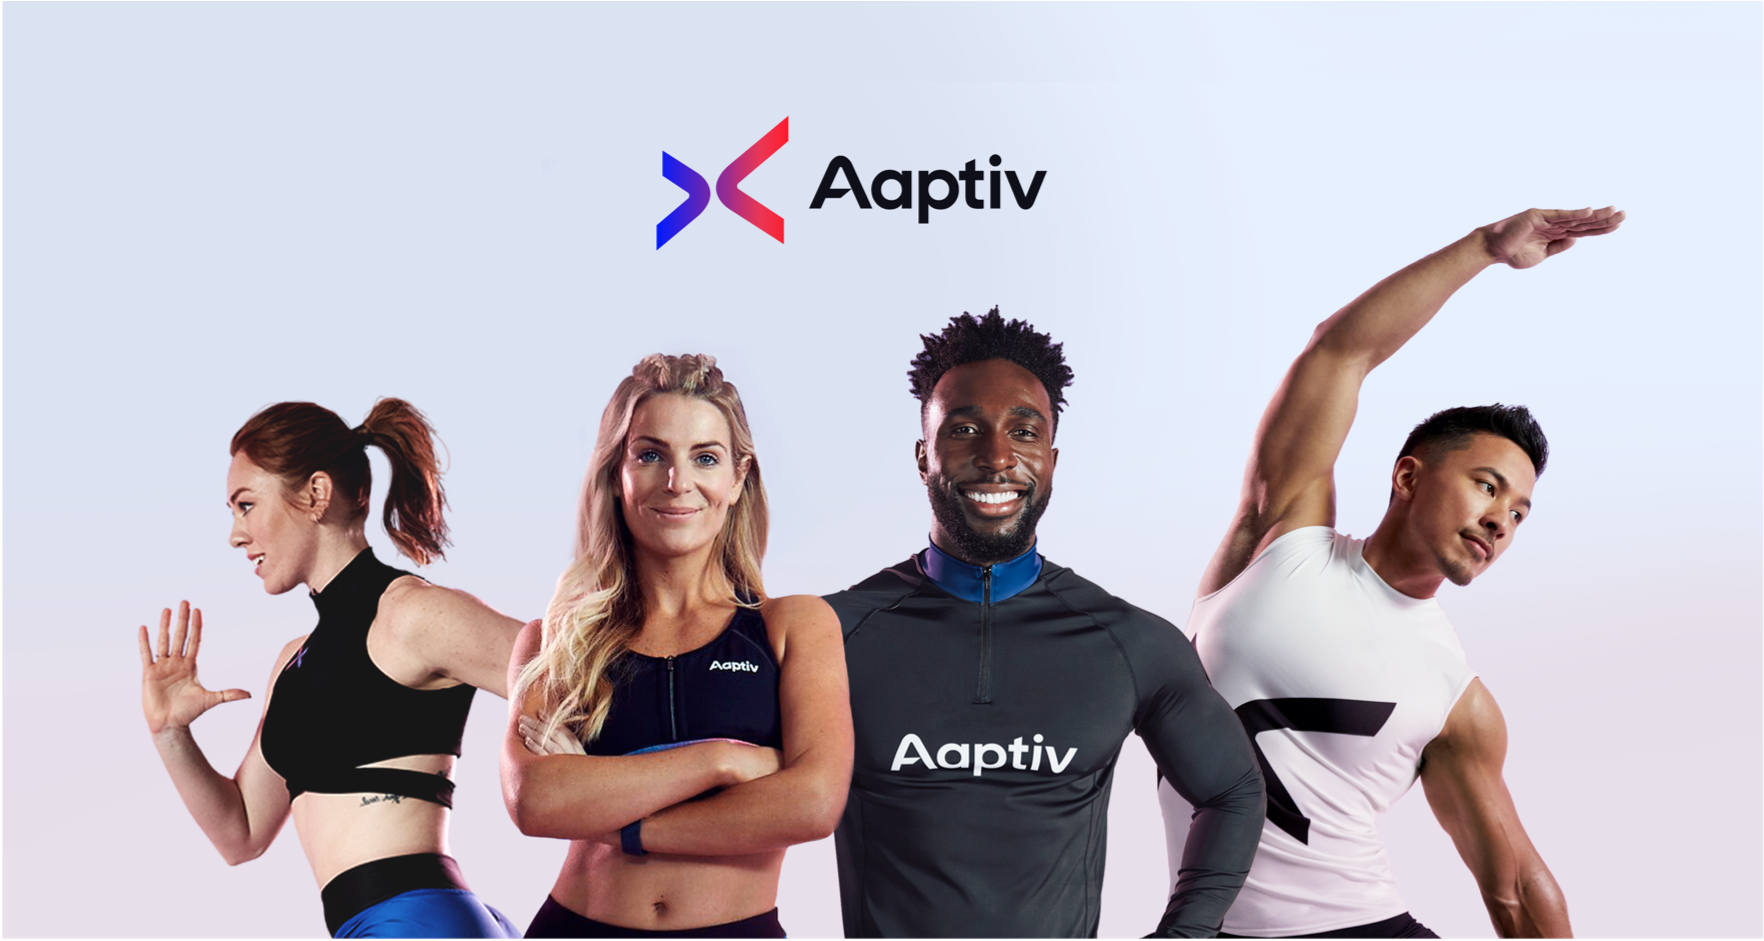 With specific cues and top trainers, Aaptiv ensures members know exactly what they are doing in workouts, even without a video to following along with. (Image: Courtesy Aaptiv)